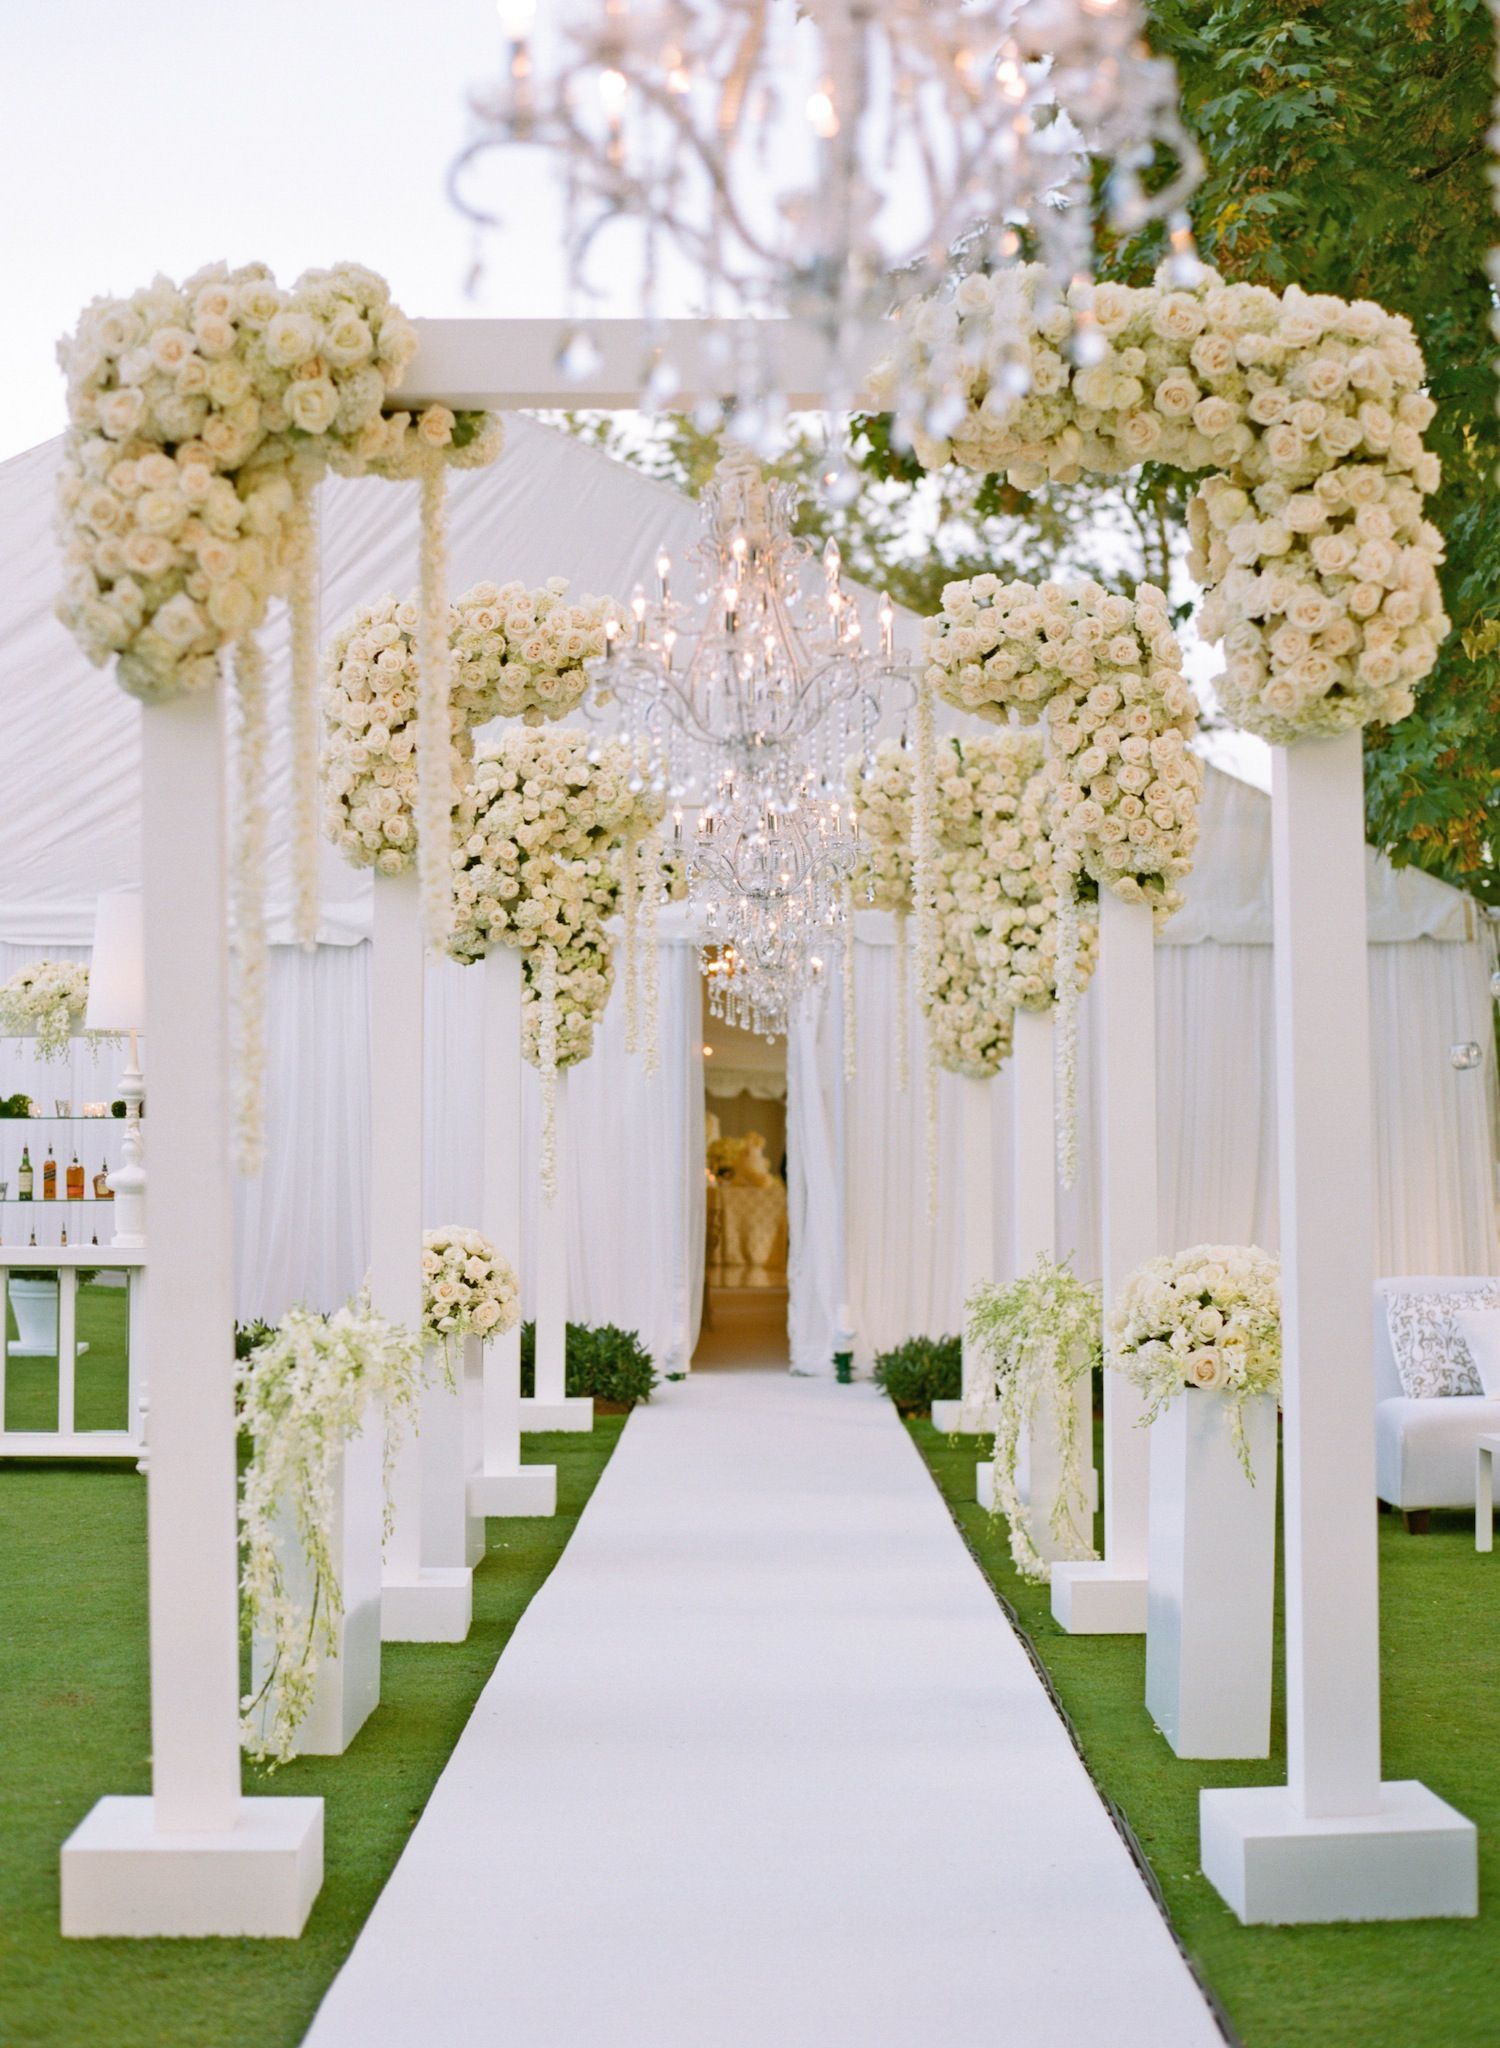 Elegant All White Country Club Wedding With Natural Greenery Wedding Reception Entrance Wedding Entrance Decor Wedding Aisle Decorations